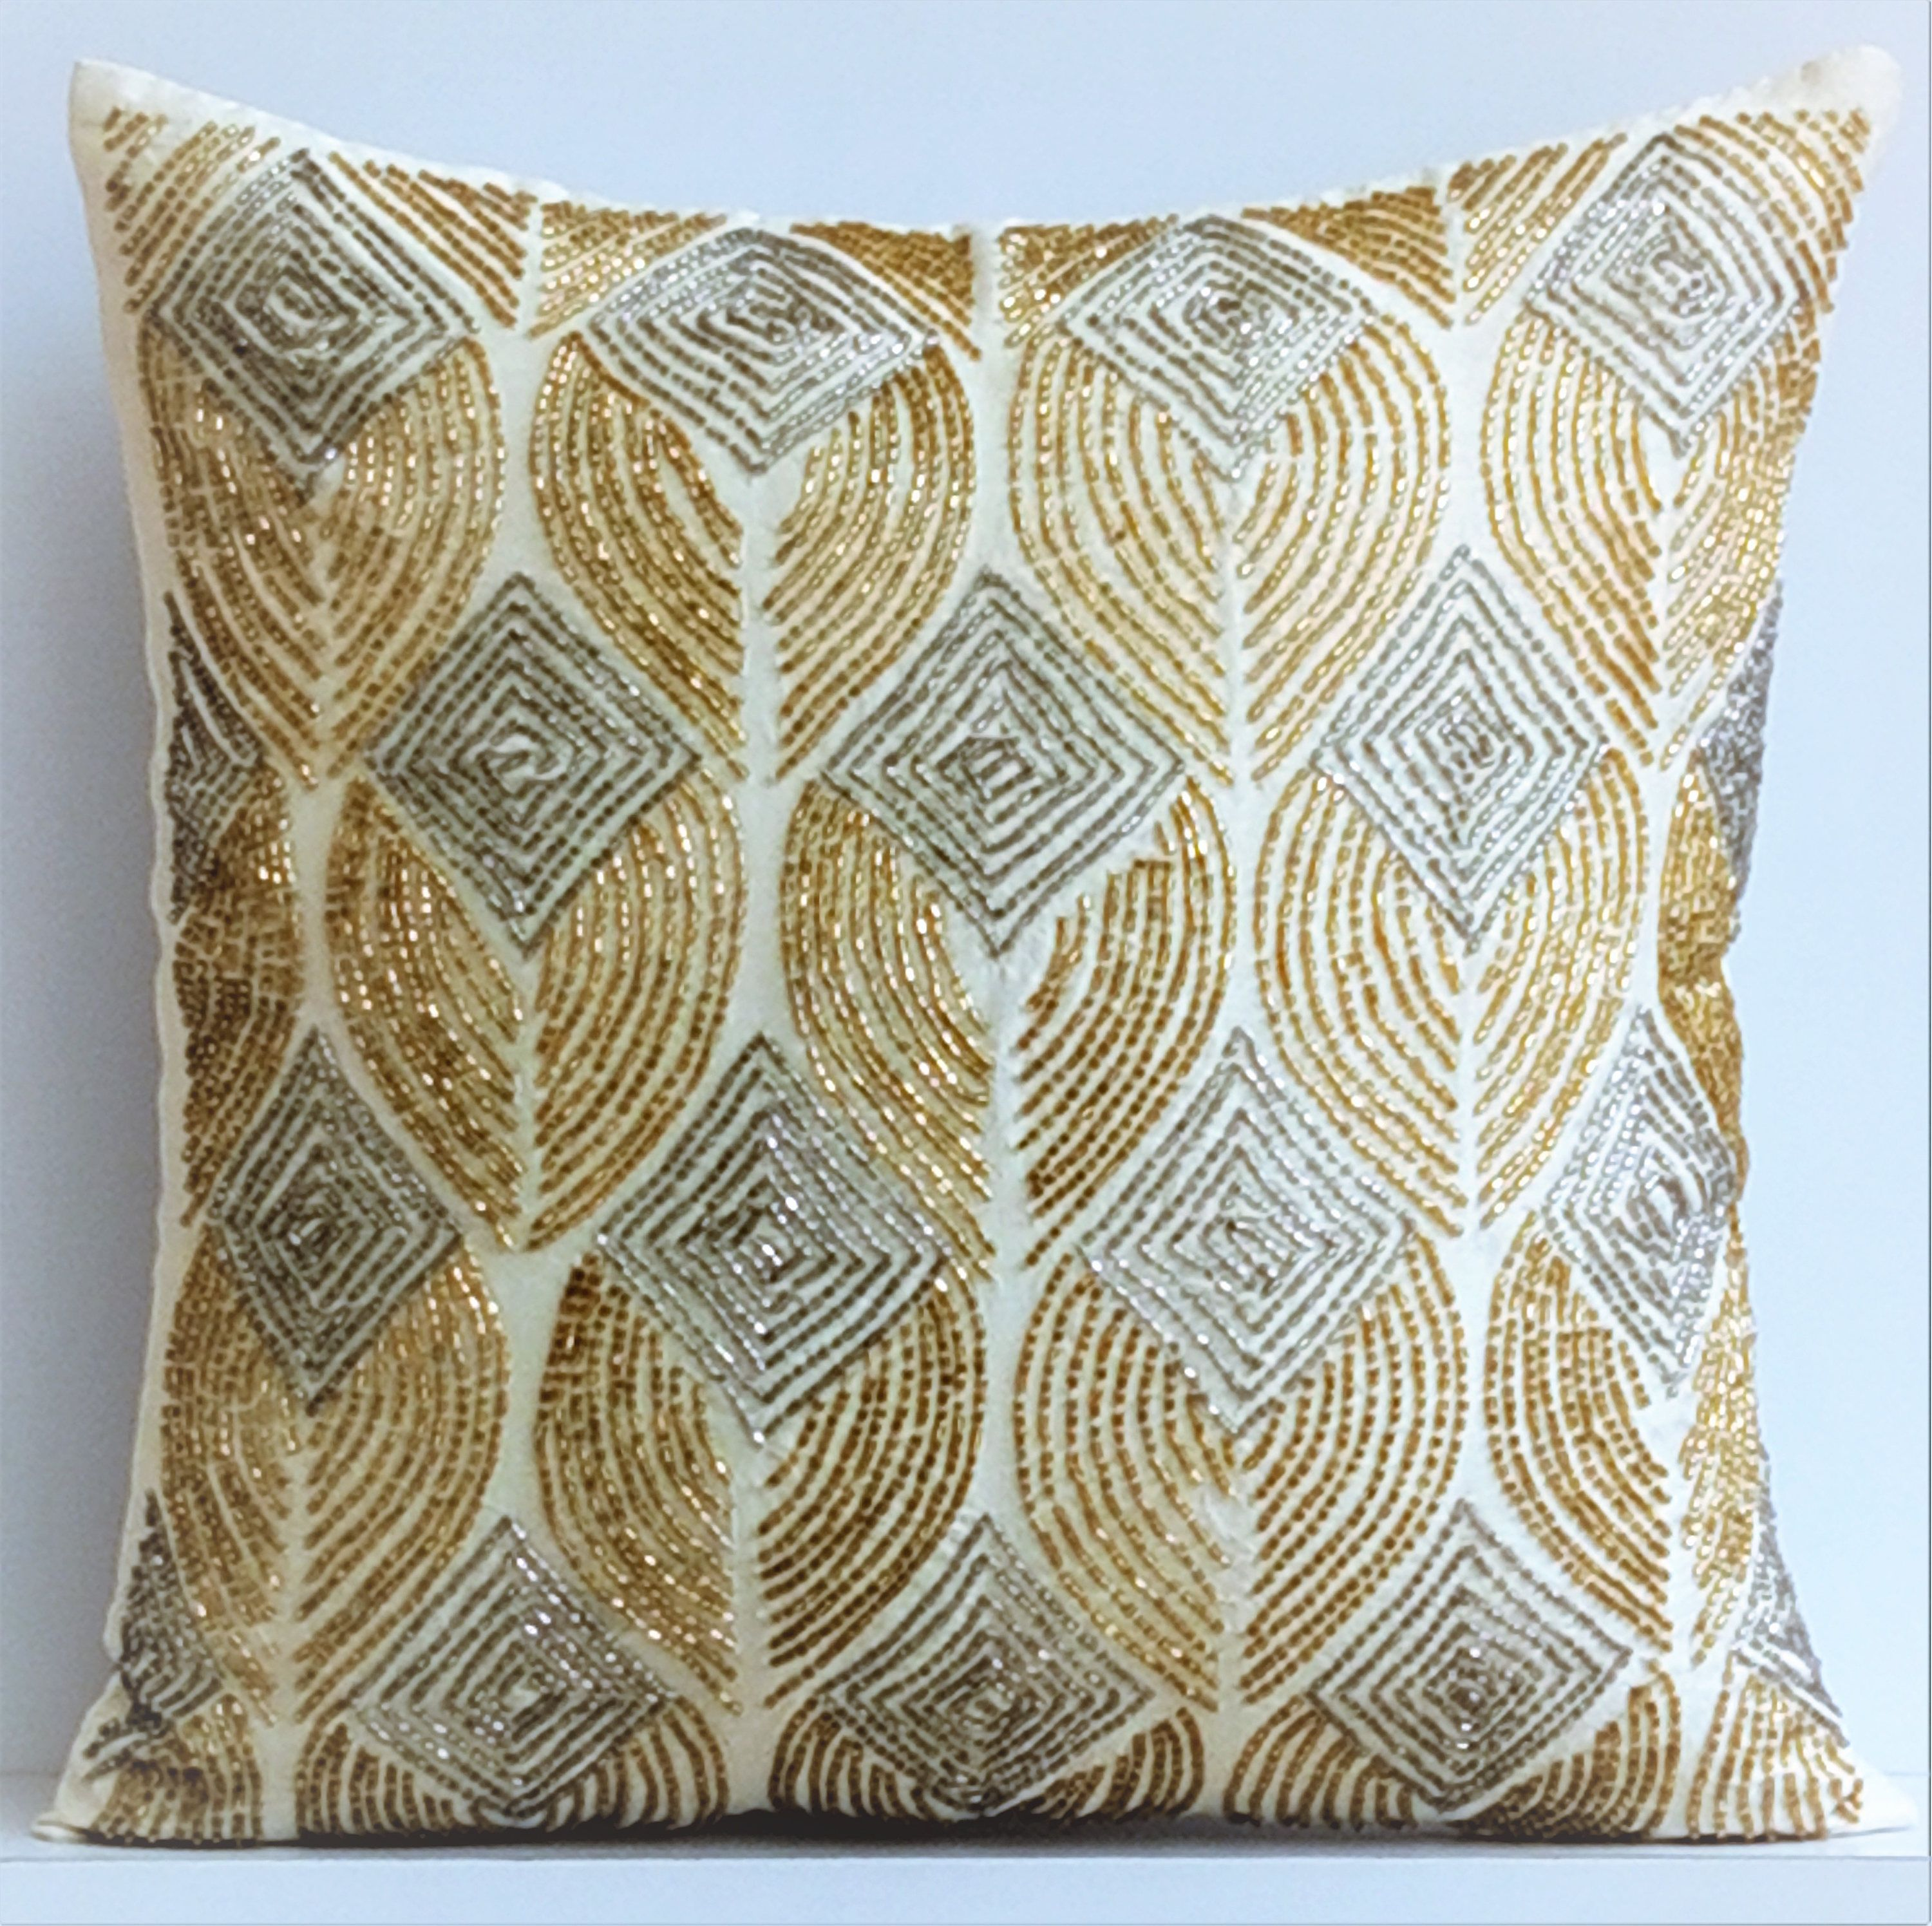 Ivory Decorative Pillow Cover 16 X16 Silk Pillows Covers For